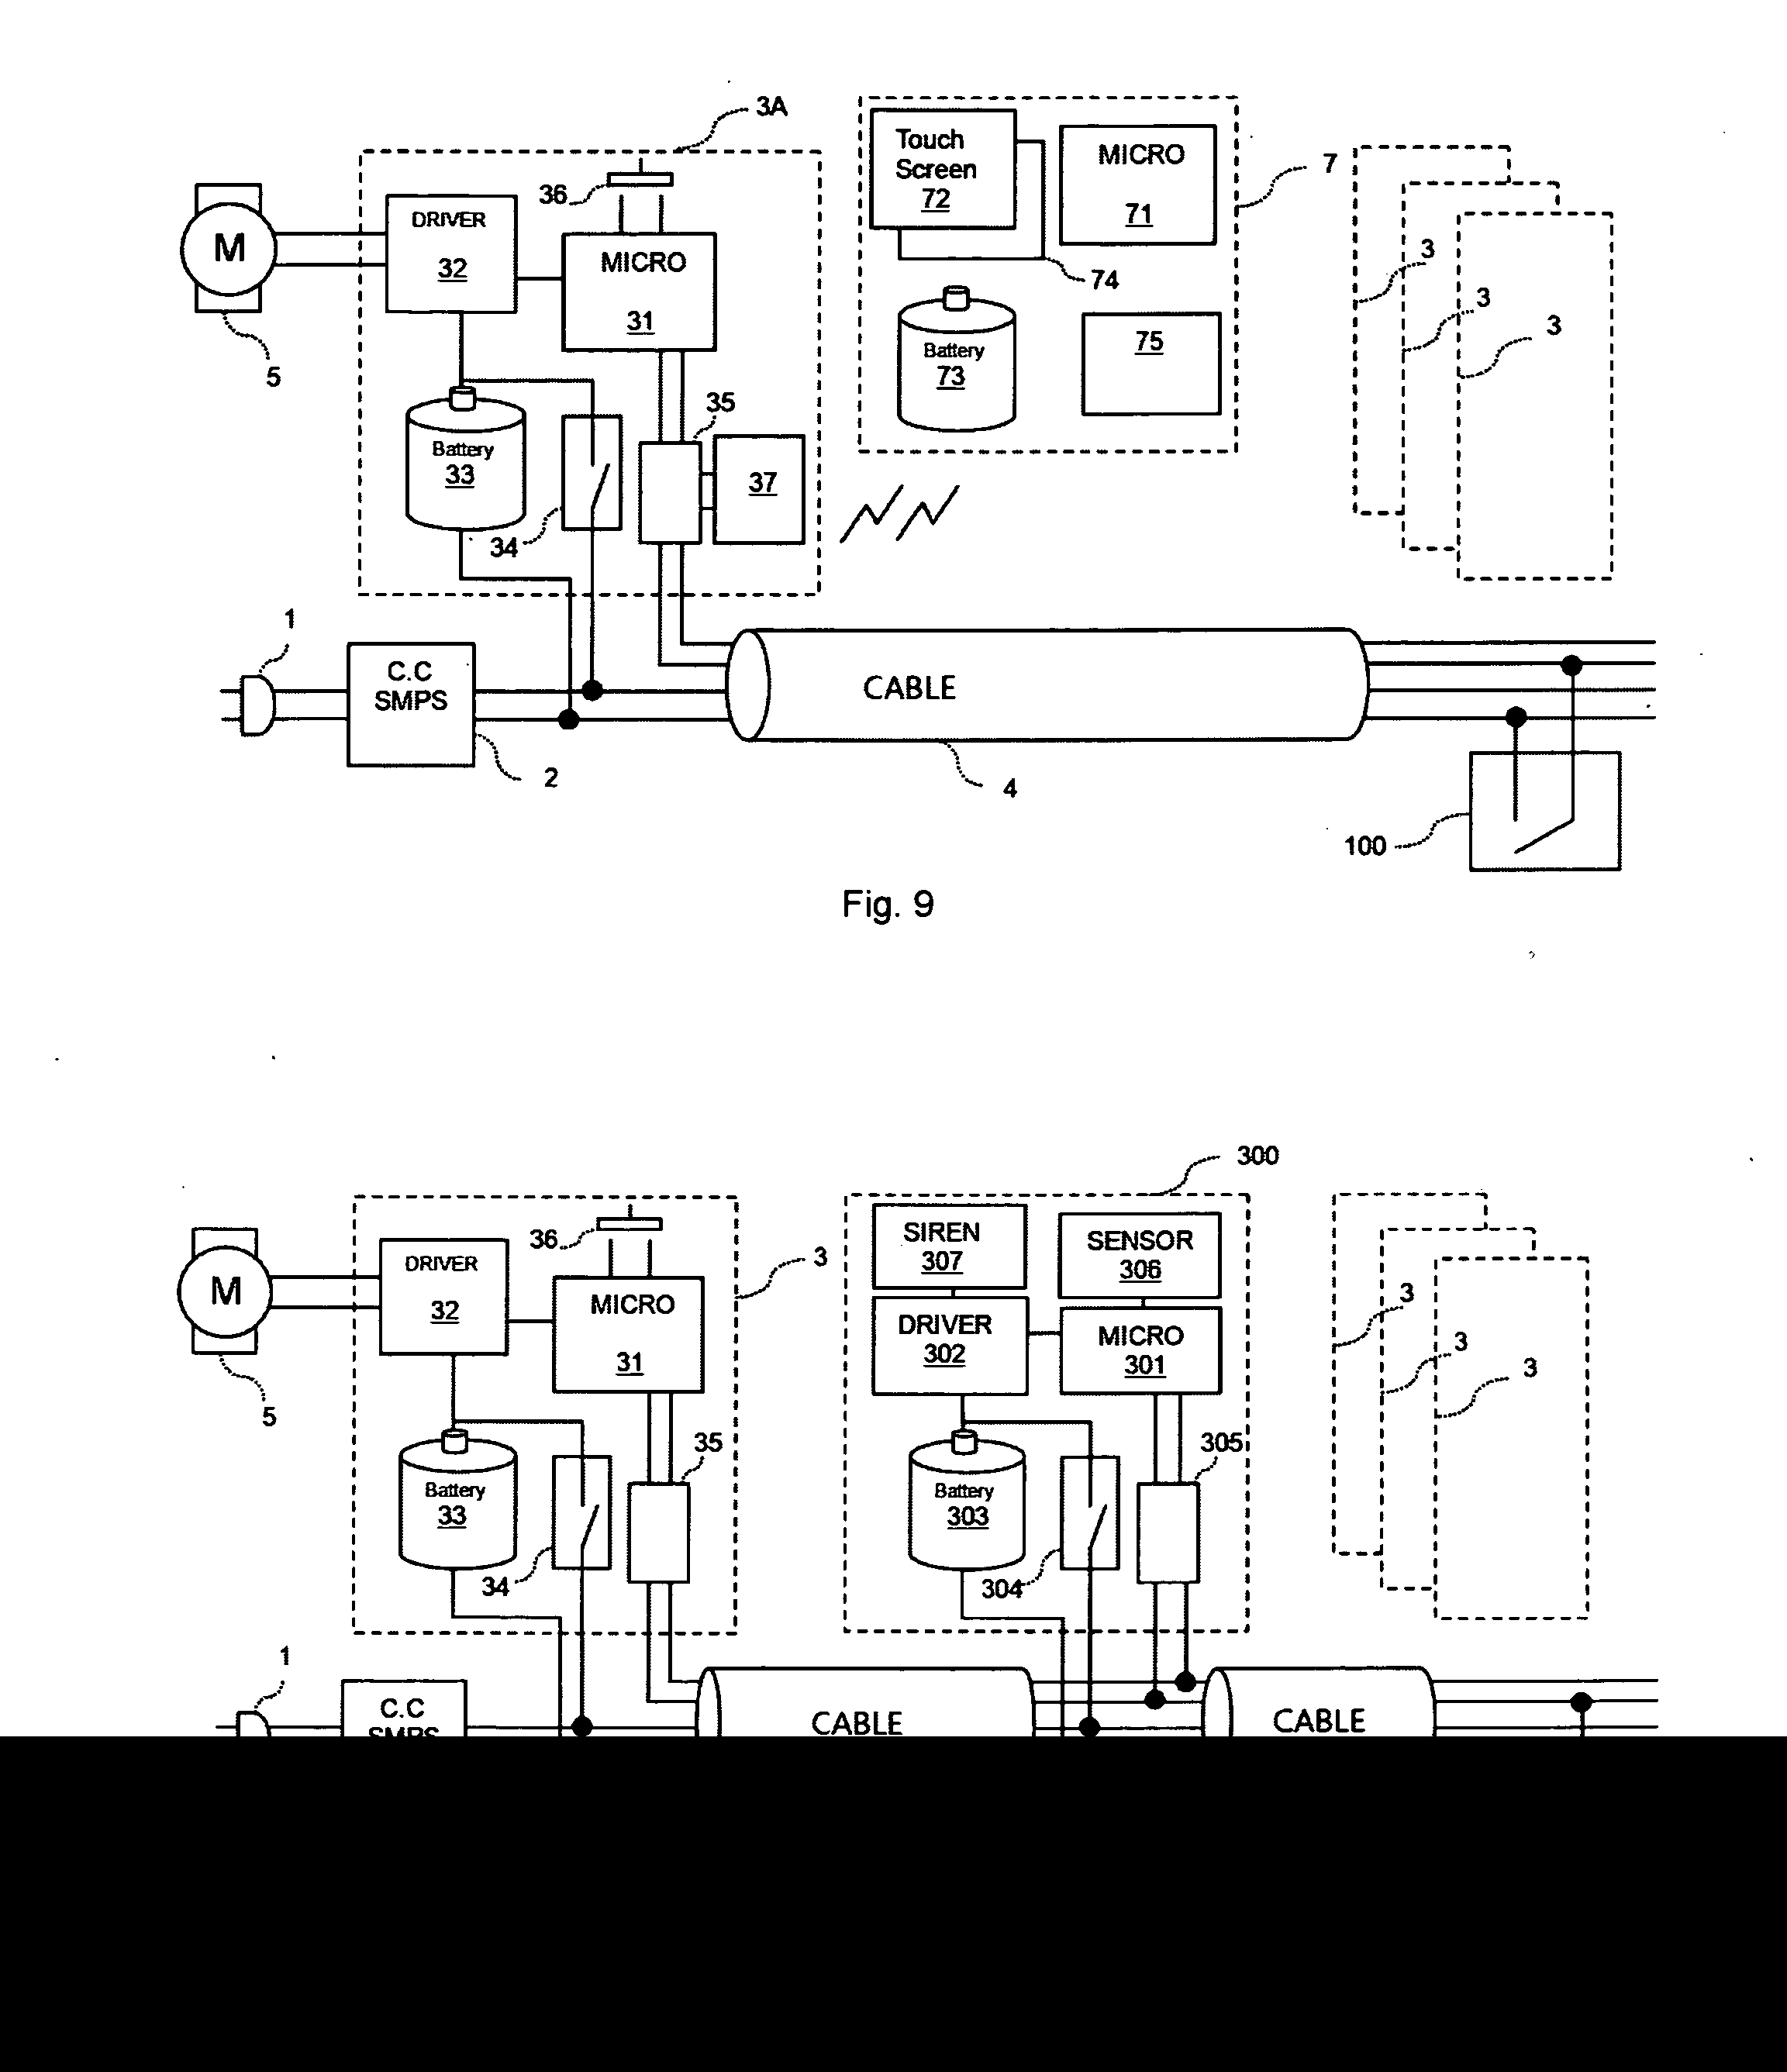 US20140352896A1 20141204 D00005 patent us20140352896 network roller shutters google patents roller shutter switch wiring diagram at gsmx.co